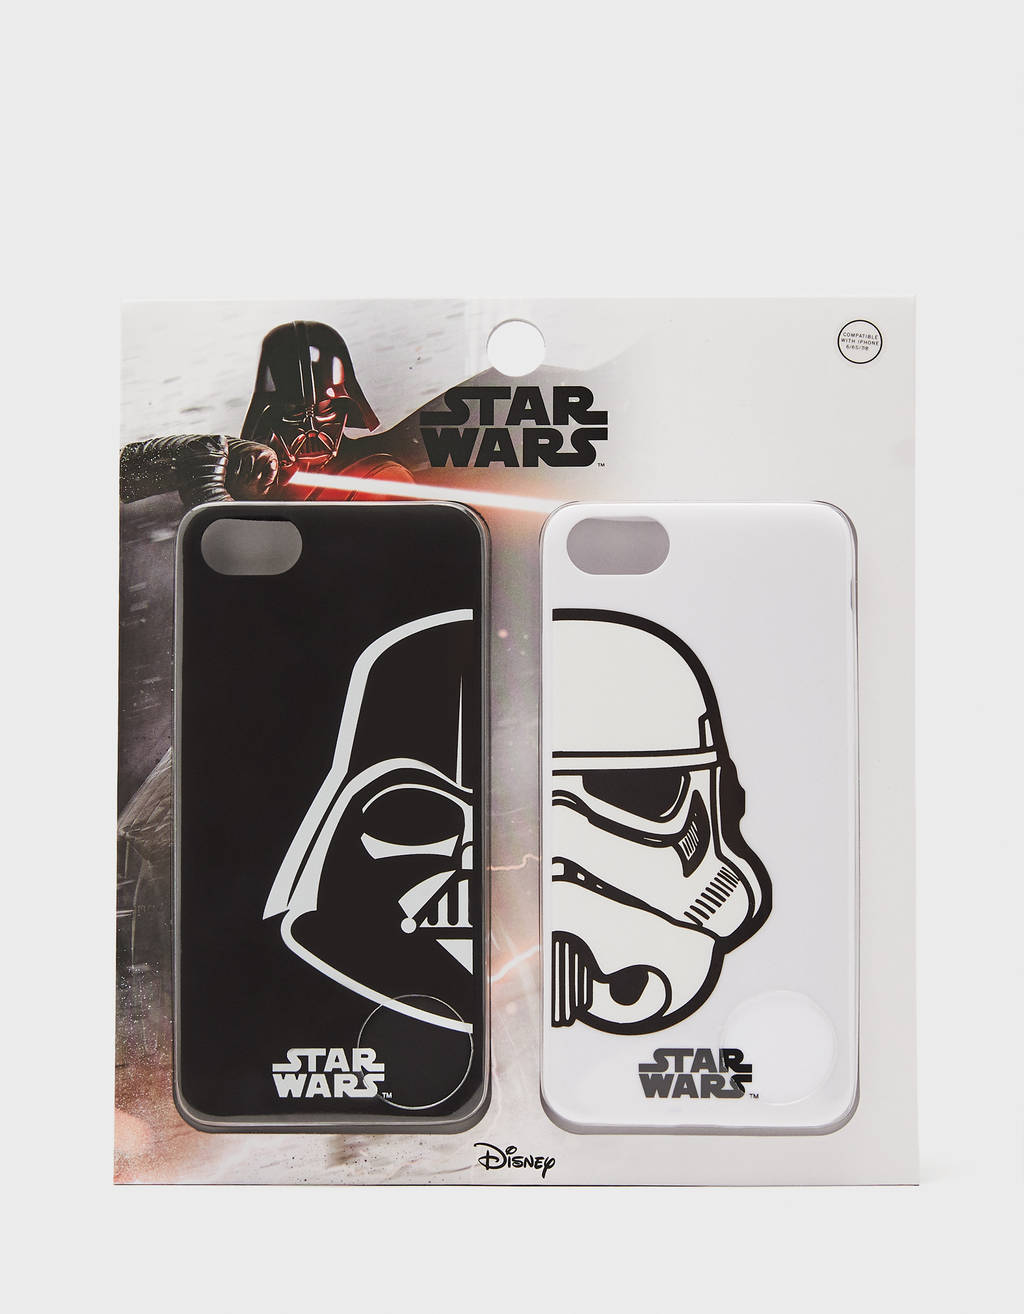 Set of Star Wars iPhone 6 / 7 / 8 cases